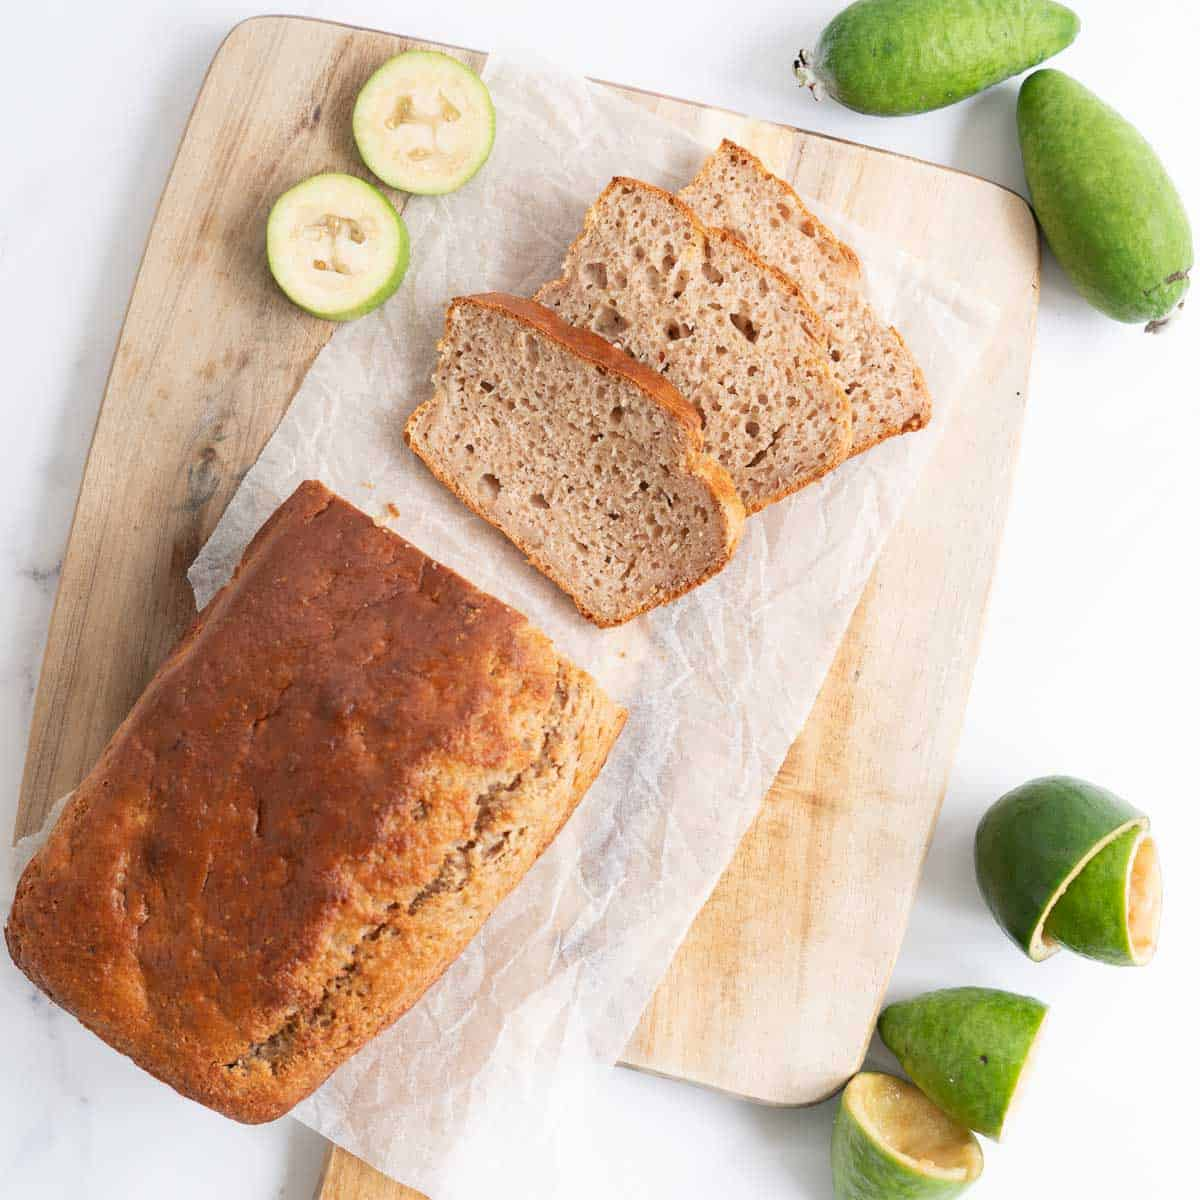 Feijoa loaf on a chopping board, three slices cut from the loaf.